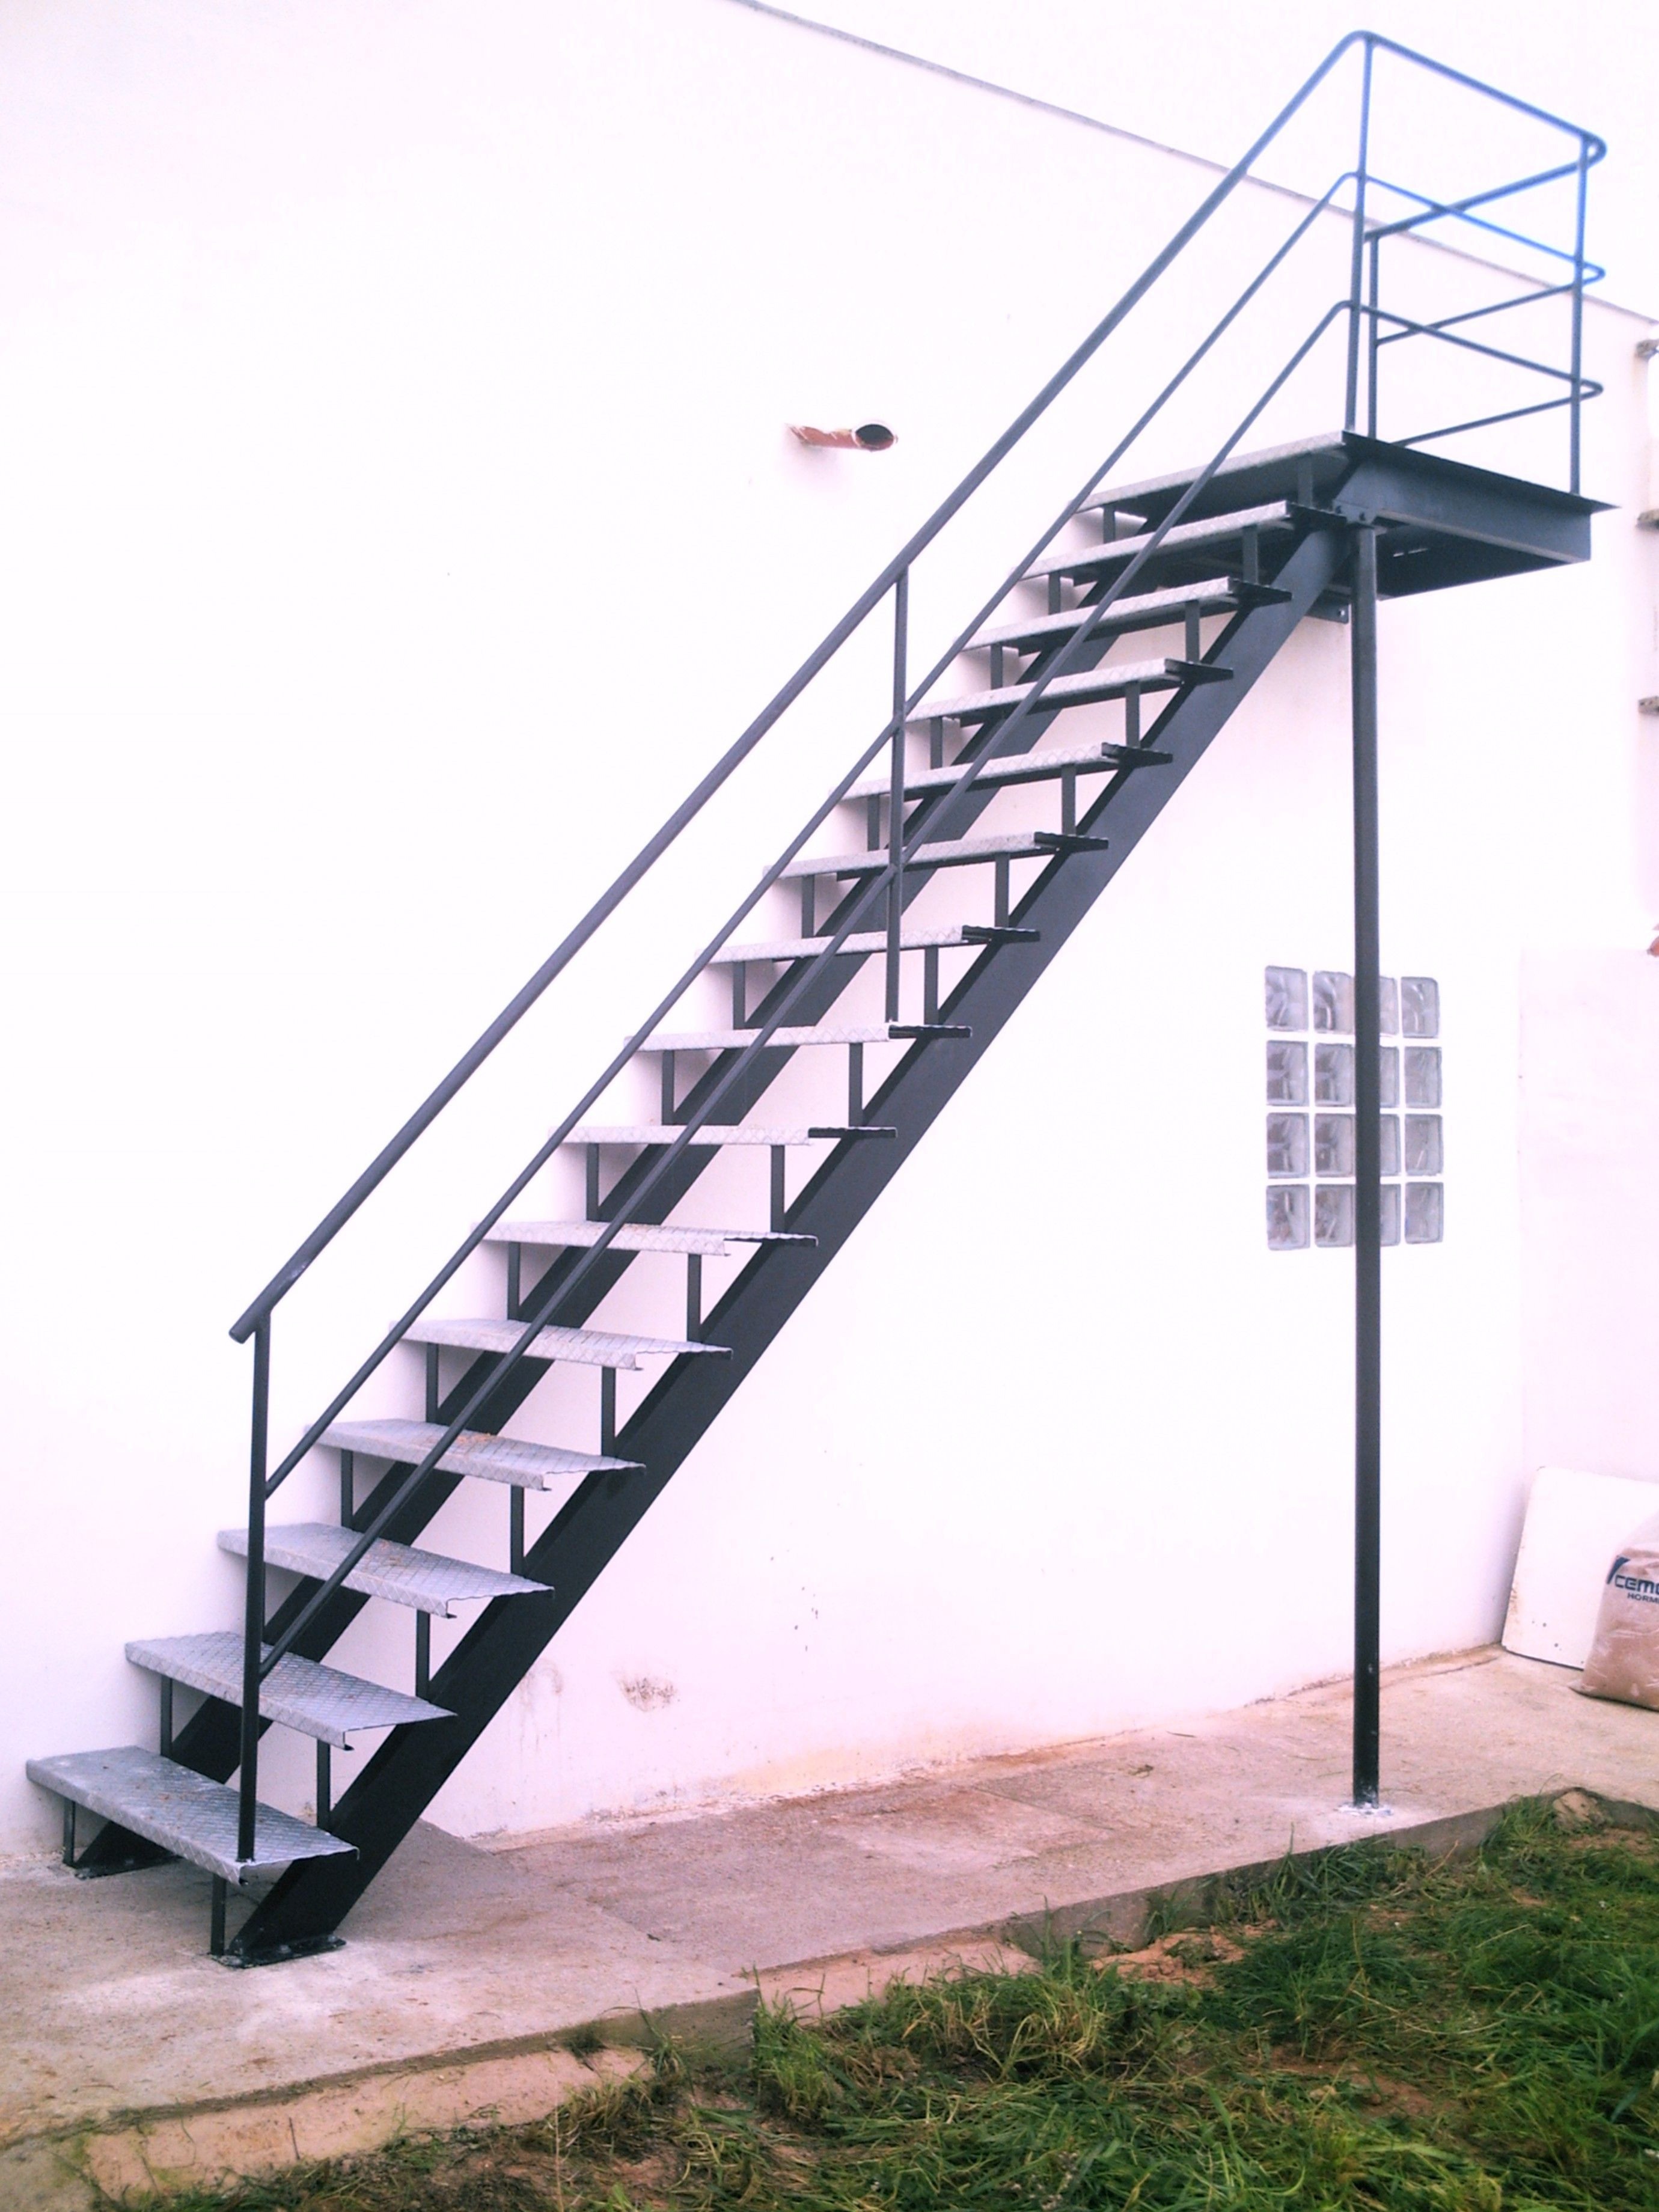 Escaleras exteriores buscar con google cachita for Como construir una escalera metalica